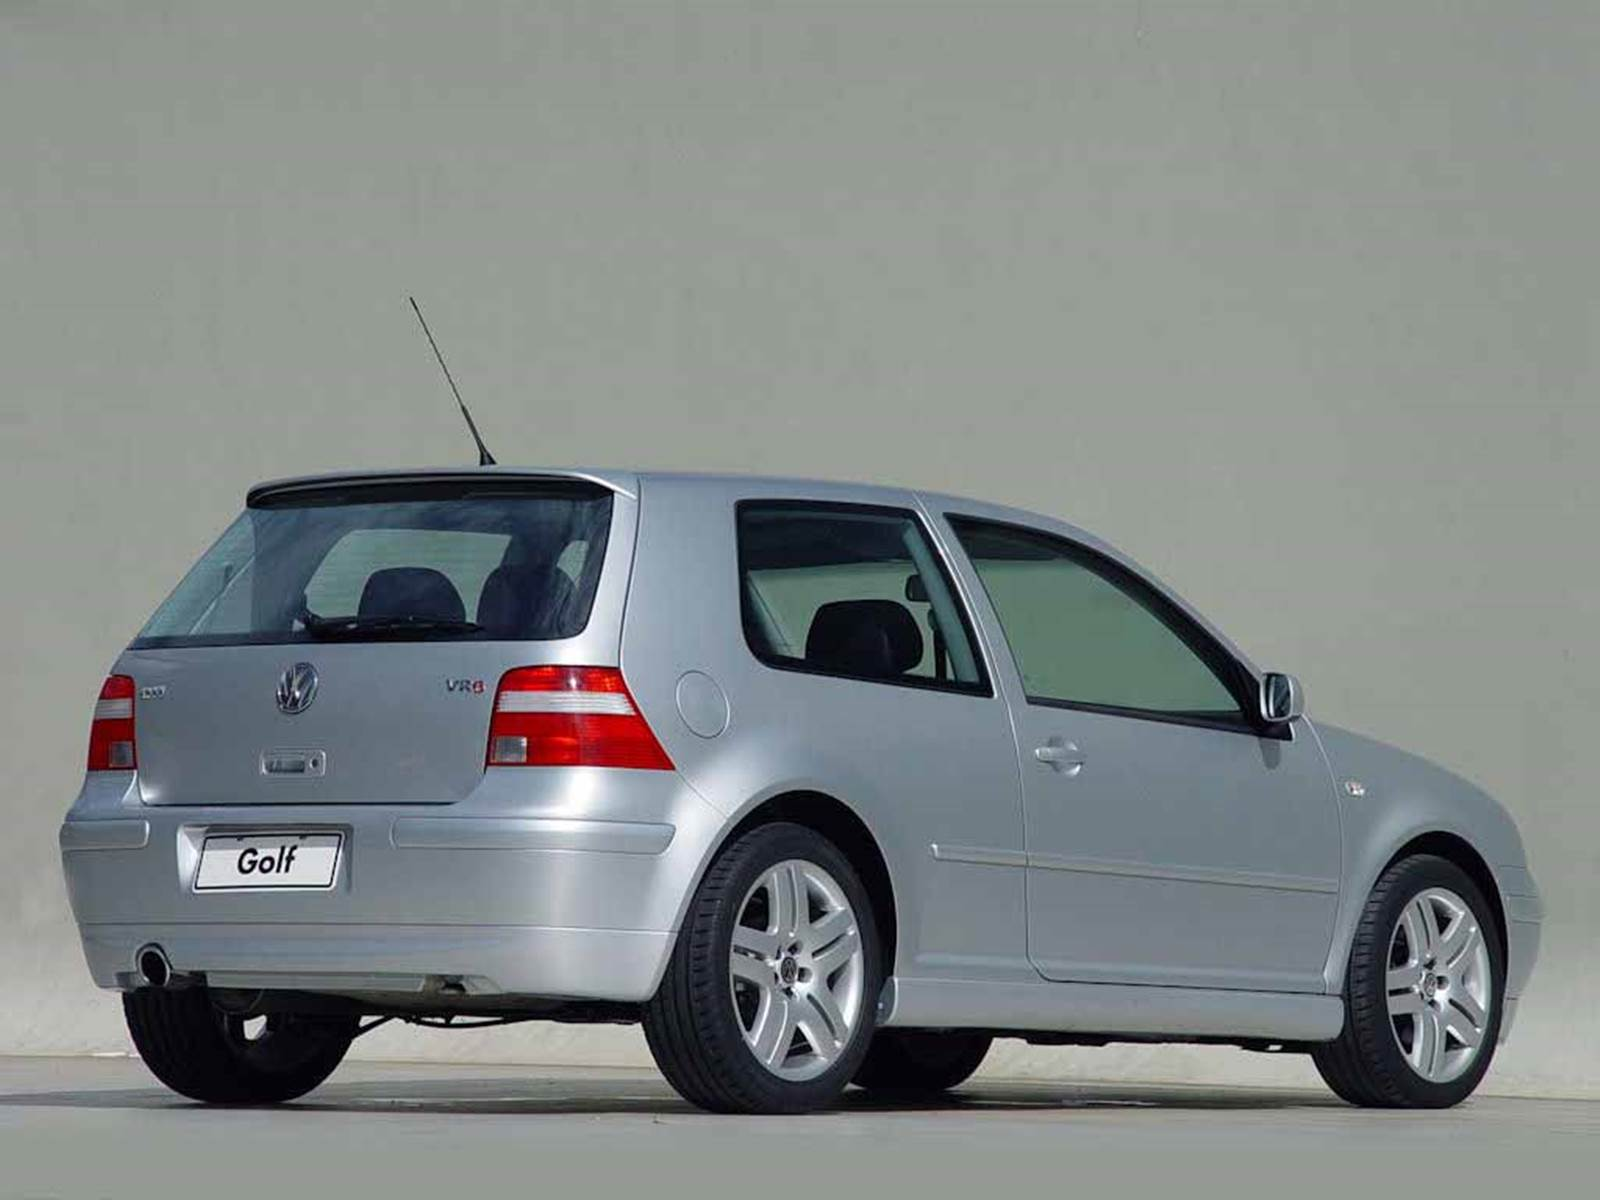 volkswagen golf gti vr6 2003 fotos desempenho e consumo car blog br. Black Bedroom Furniture Sets. Home Design Ideas